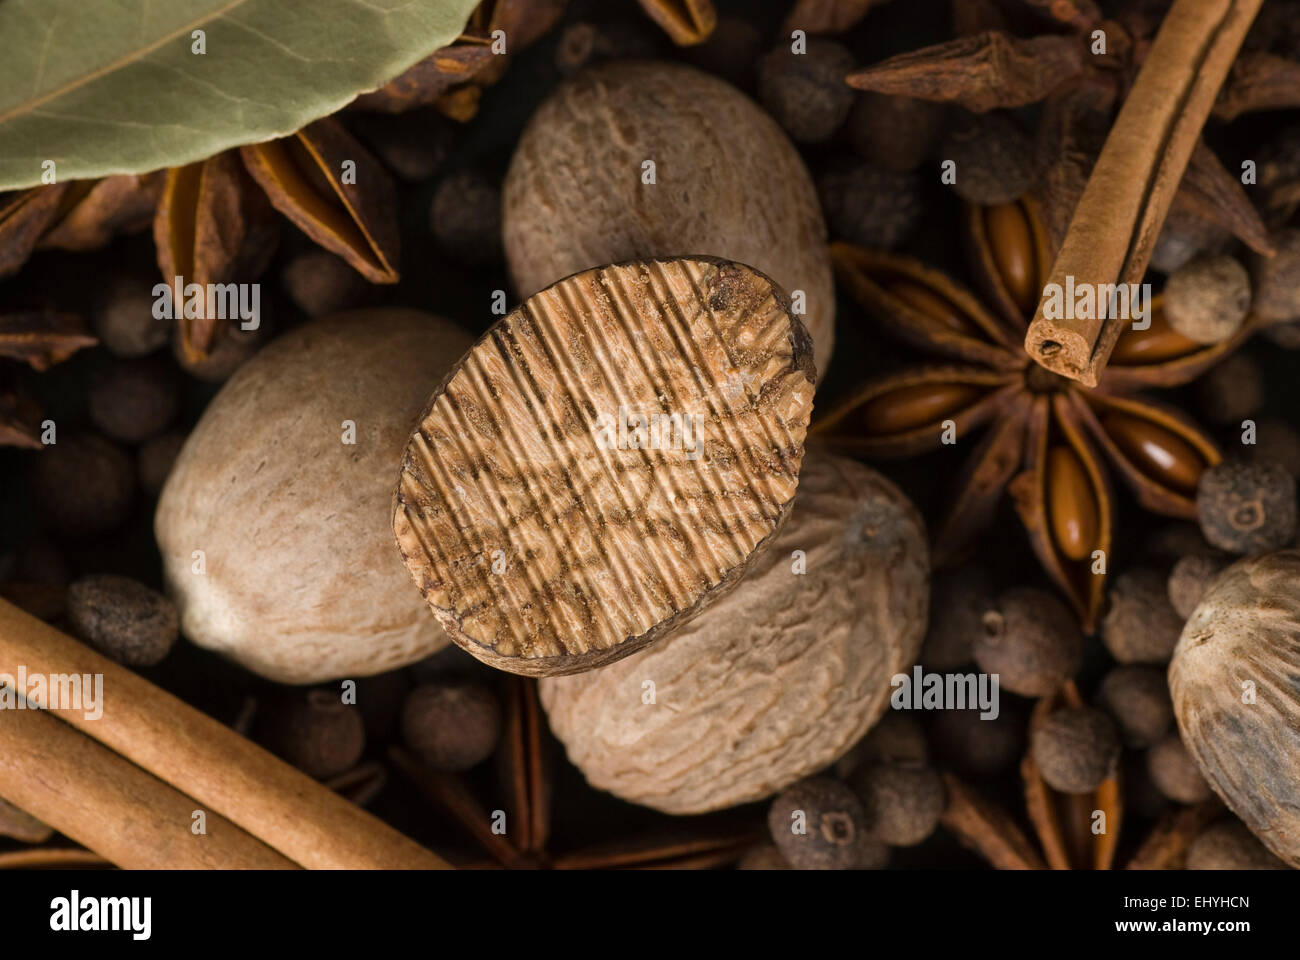 Nutmeg and other spices. - Stock Image